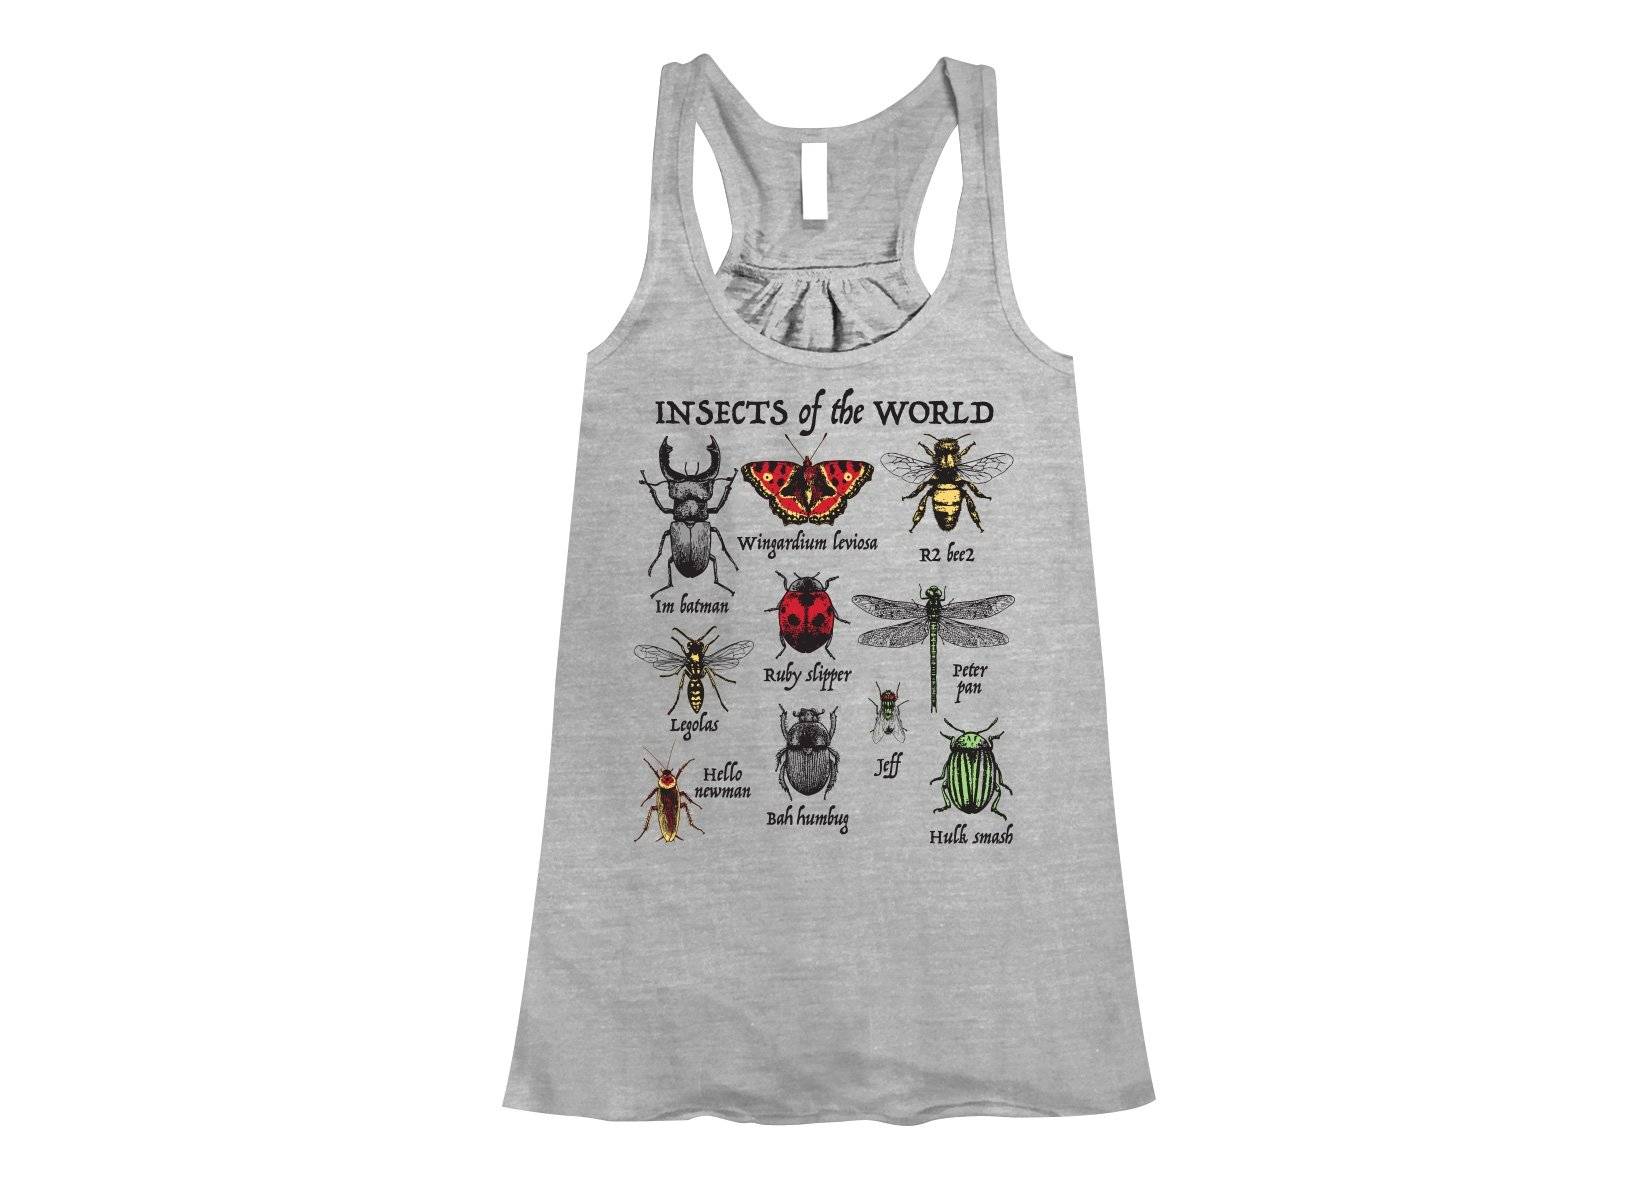 Insects Of The World on Womens Tanks T-Shirt